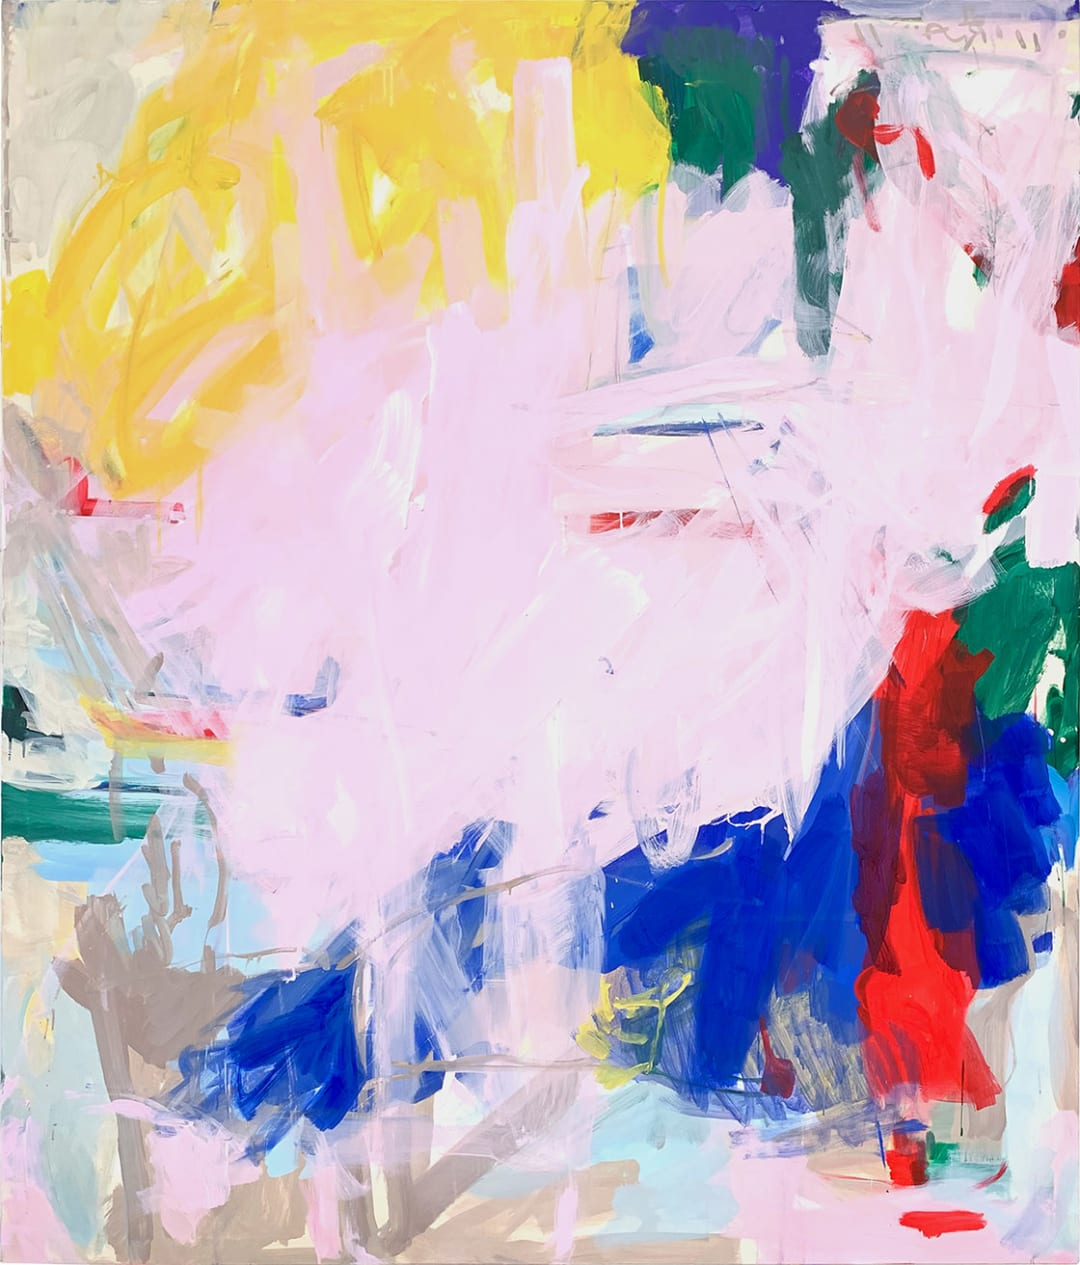 Yvonne Robert - Untitled 26/21, 79 x 67 inches, 2021